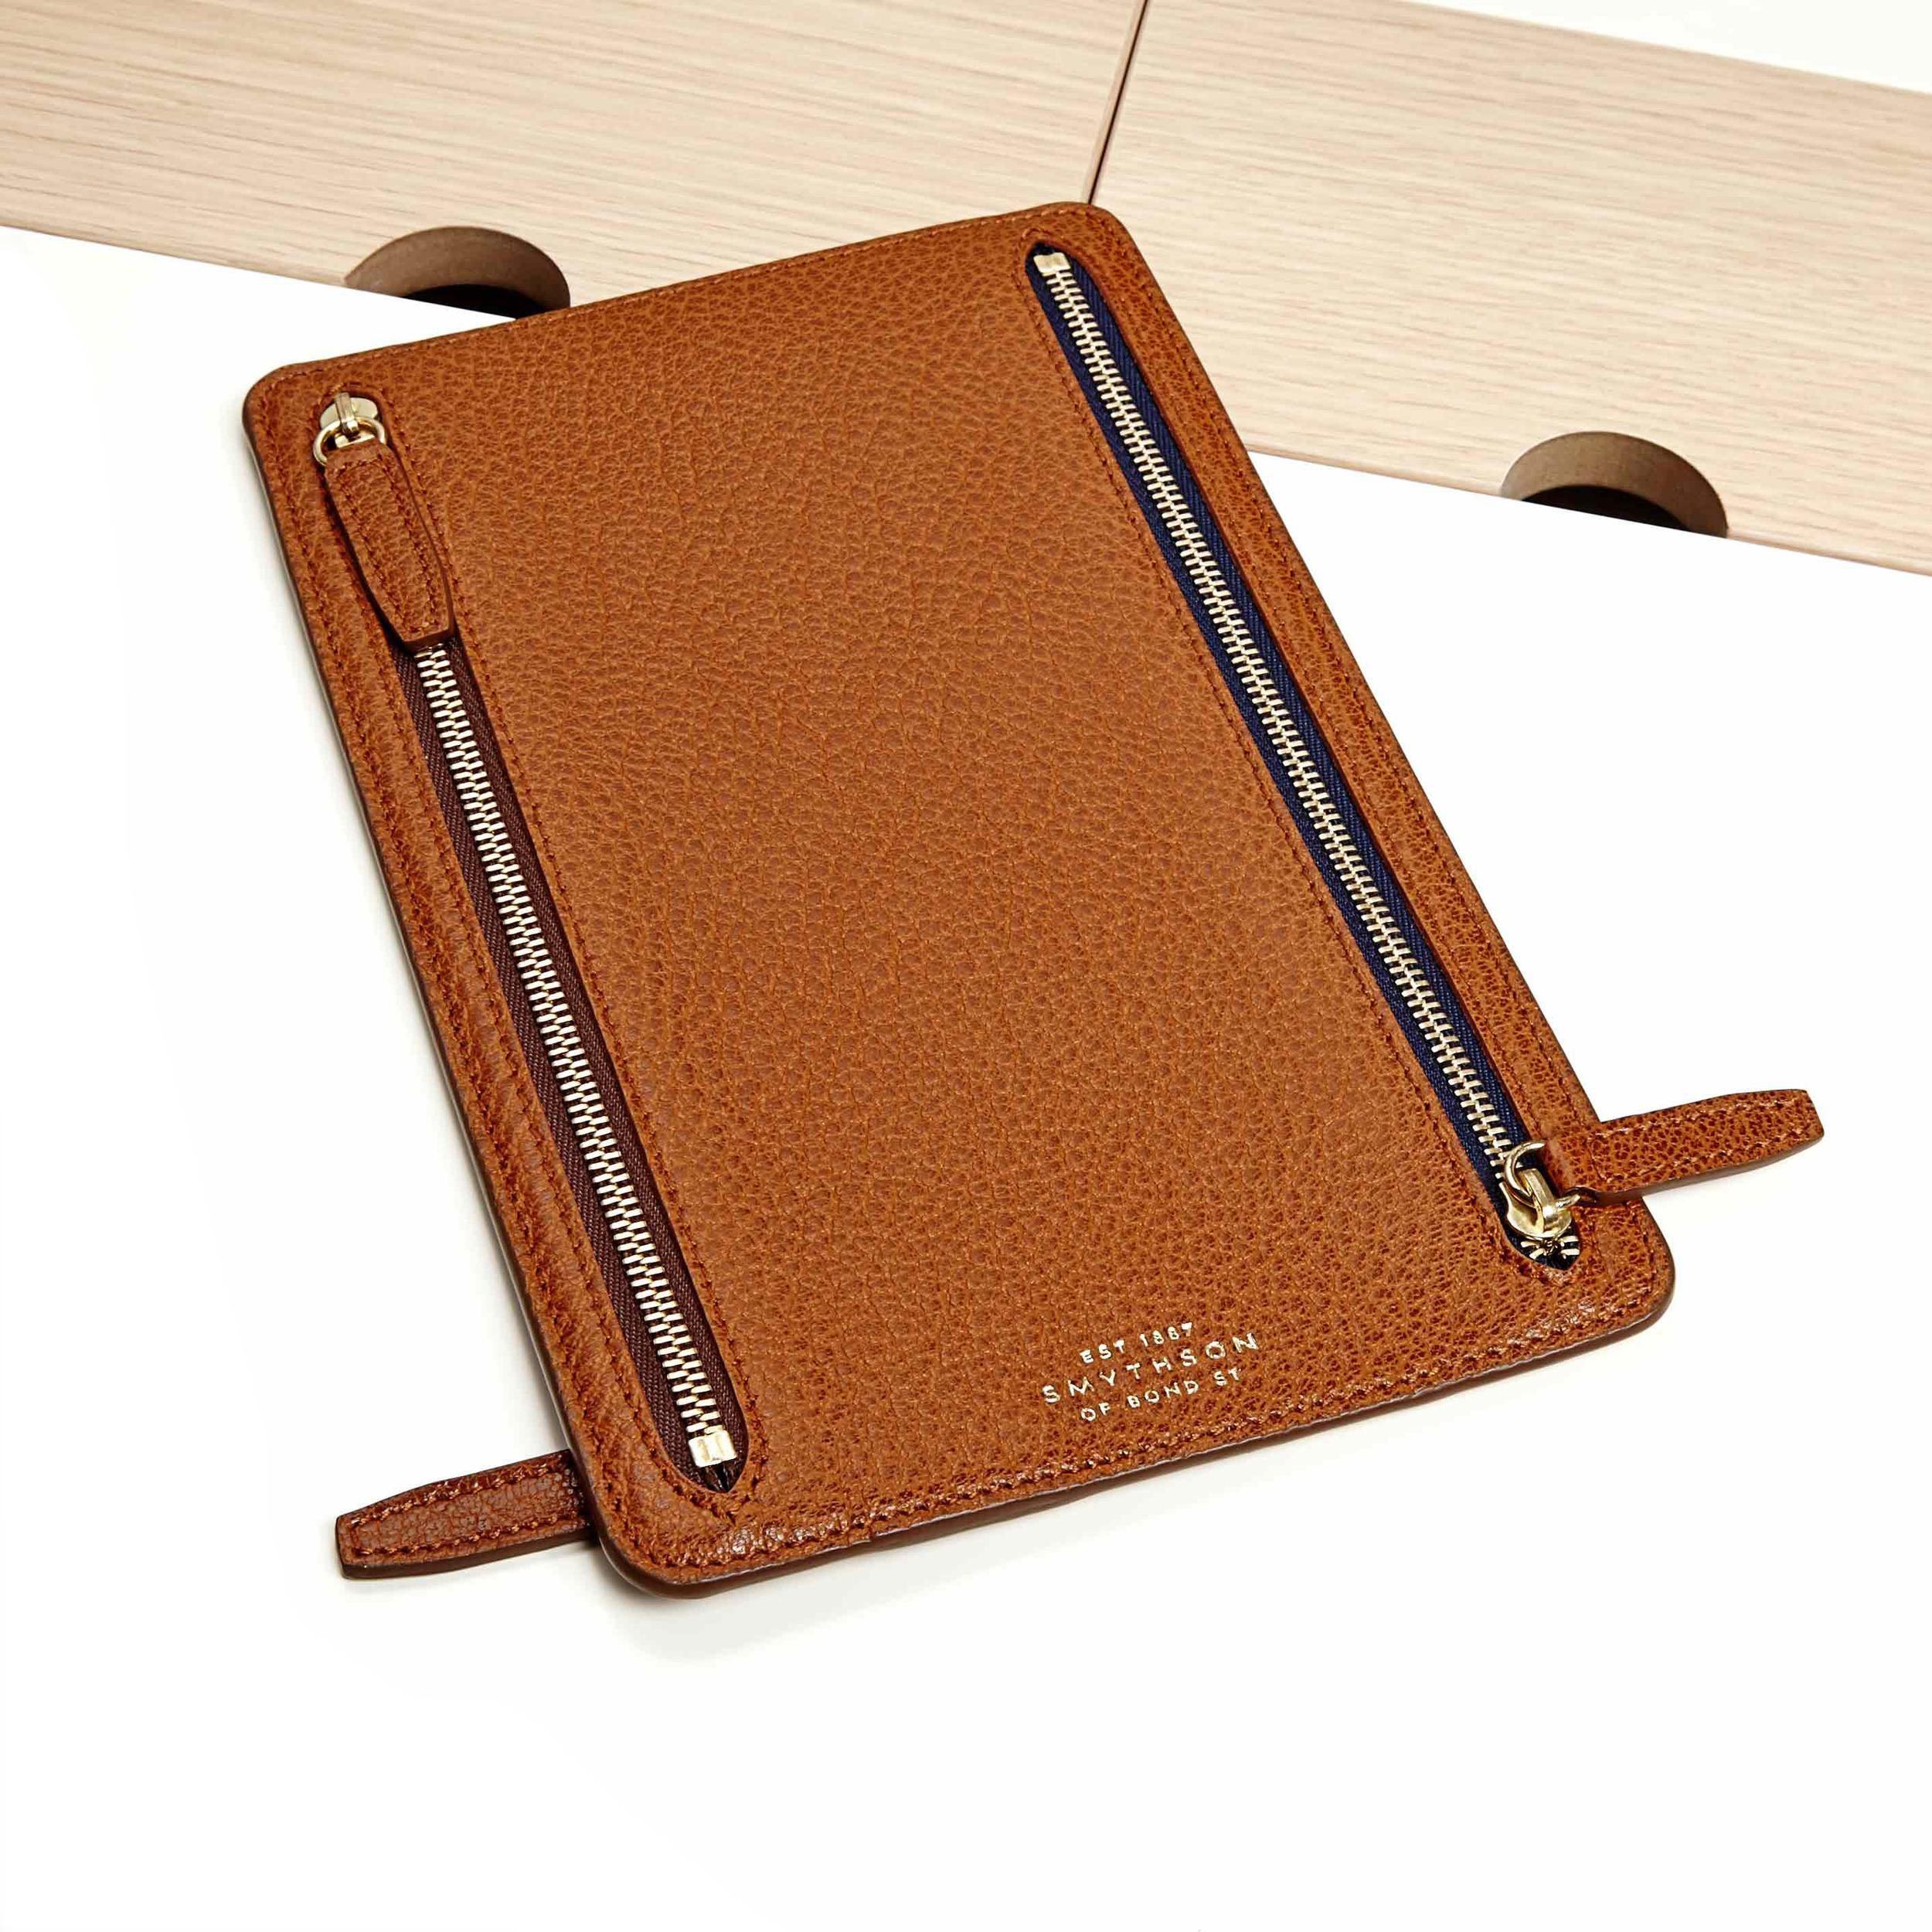 Smythson leather cases